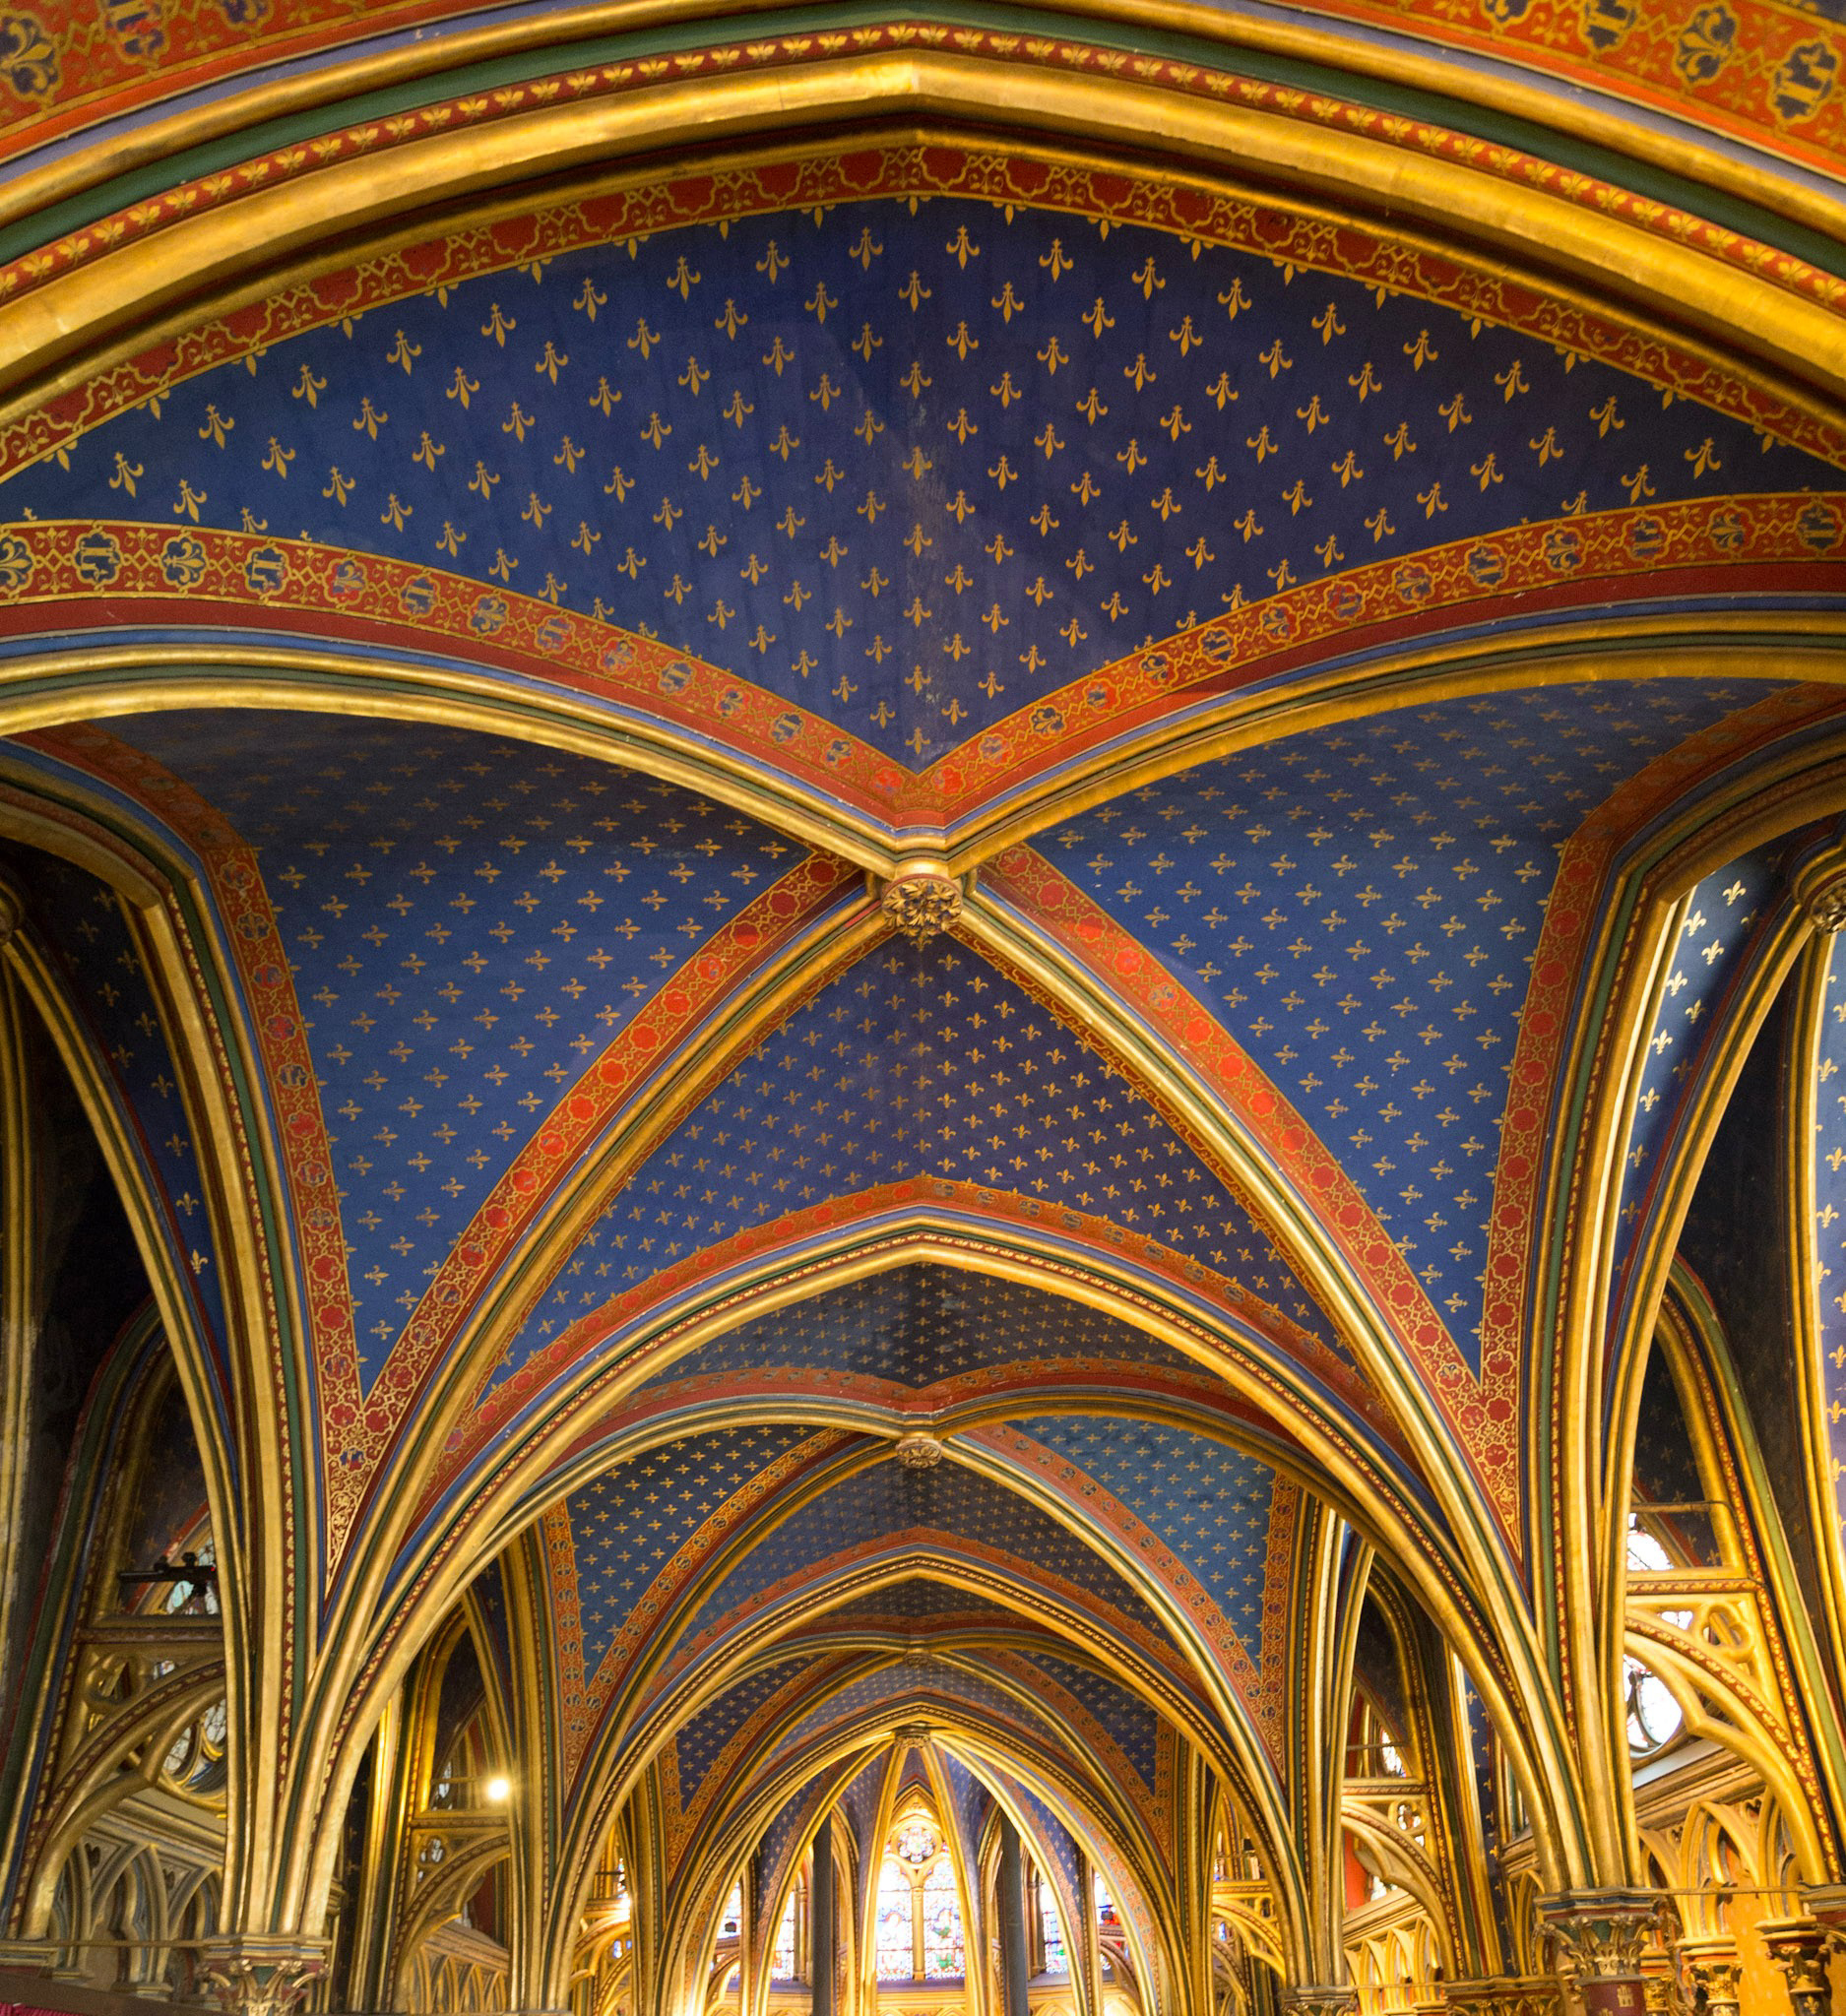 The roof of the smaller chapel below reminded me of the painting of starry night by Van Gogh which I saw at the Musée d'Orsay. More on that in my next post.